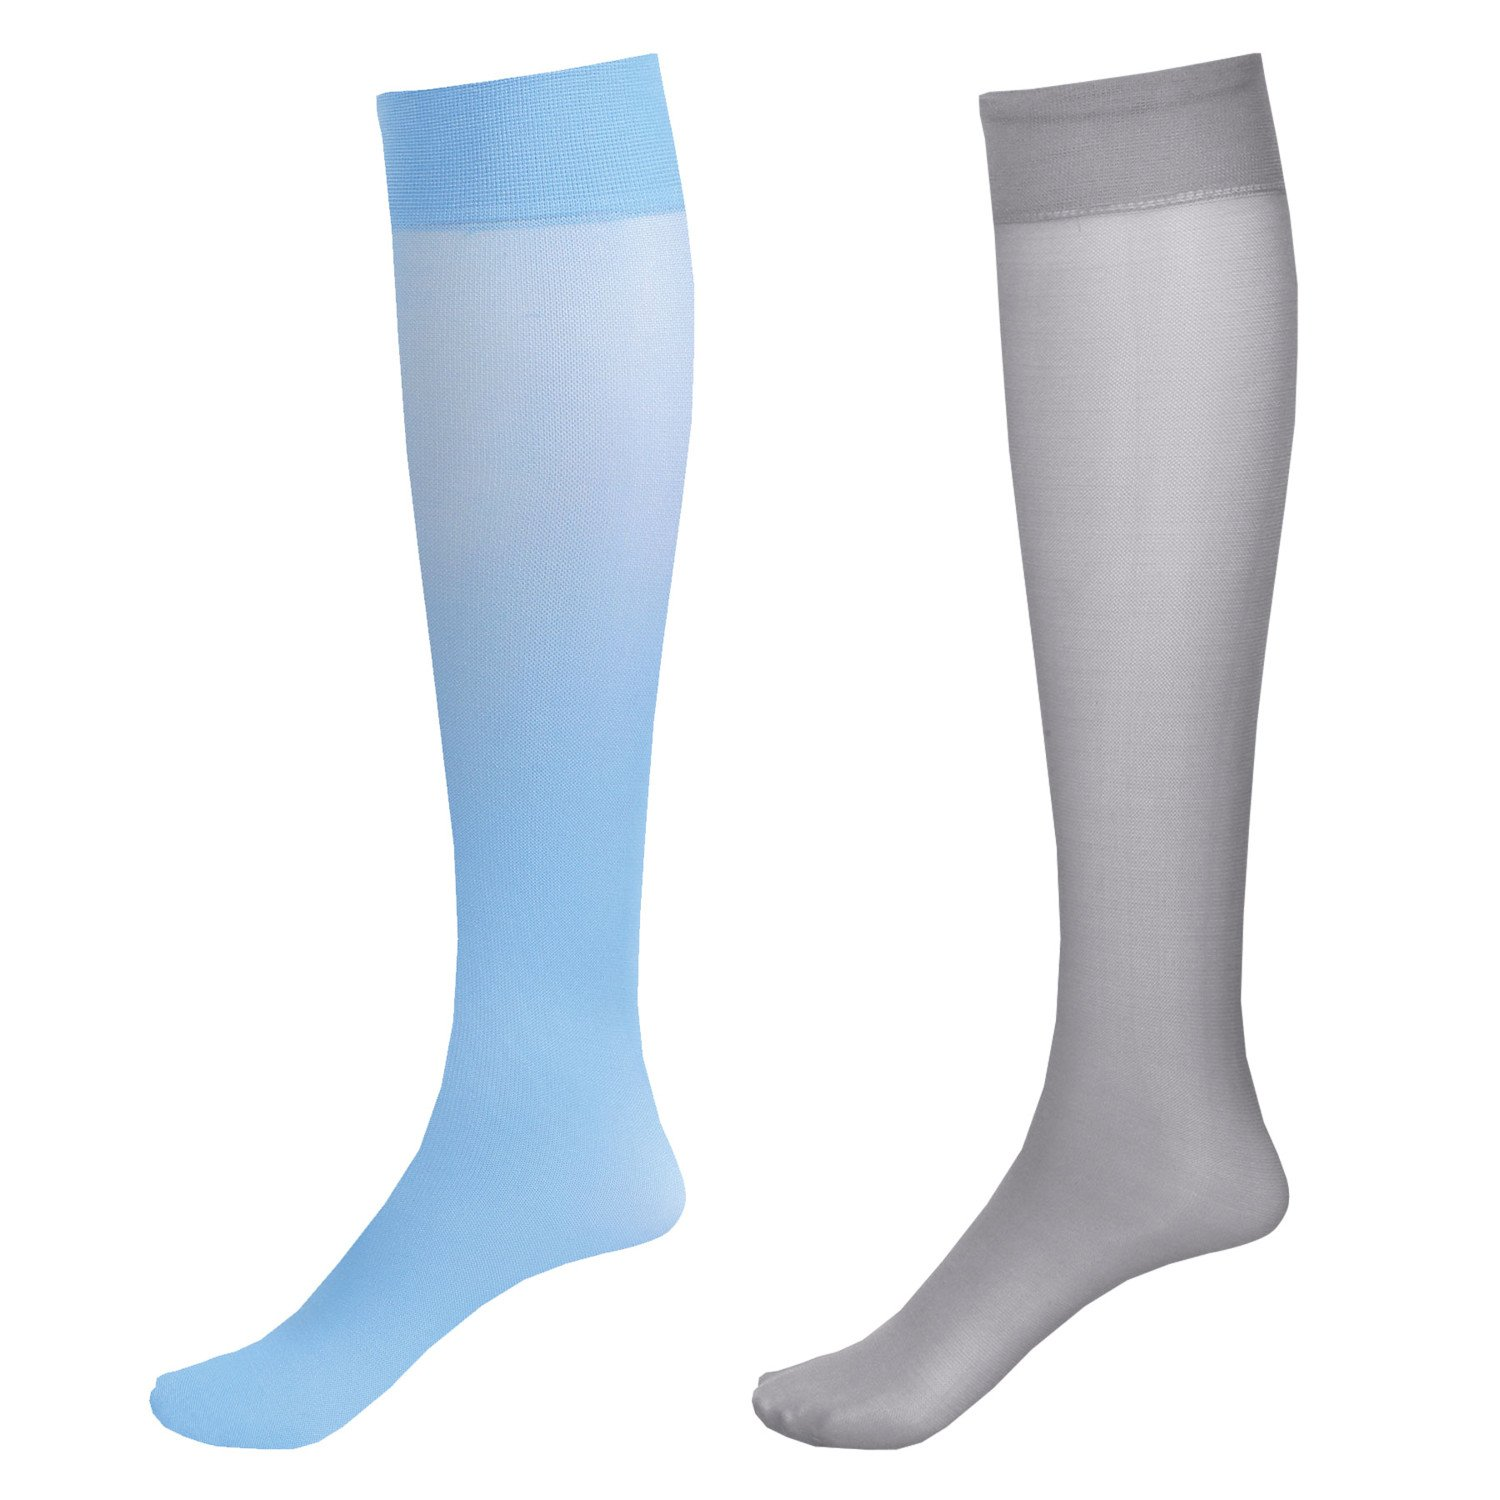 03262a77ff3 Amazon.com  Moderate Support 2 Pr Knee High Trouser Socks 15-20 mmHg  Compression - Pale Beige Black  Health   Personal Care